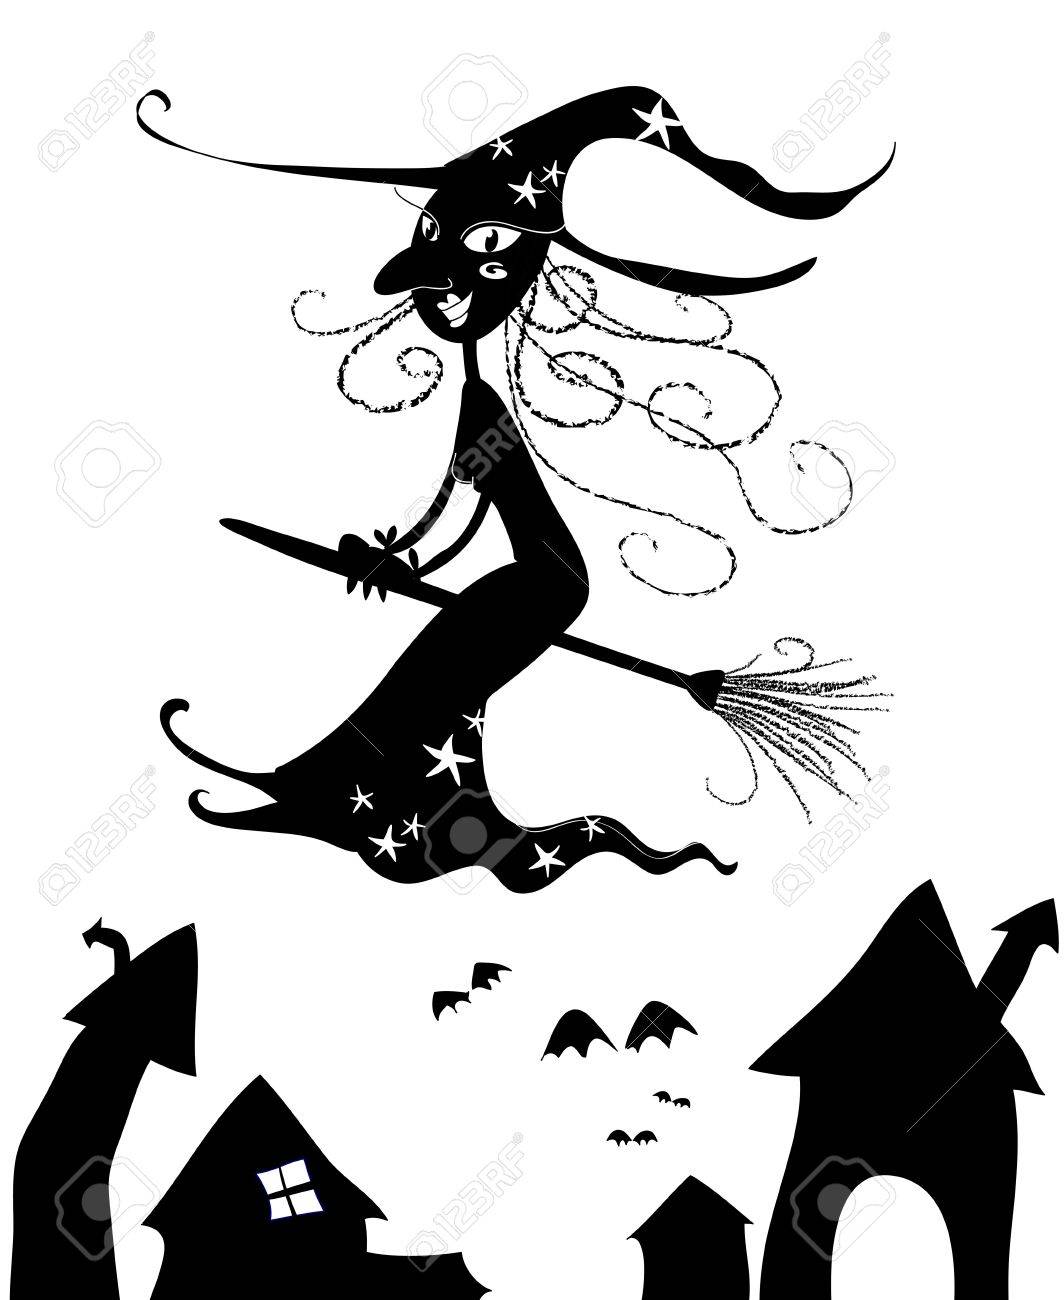 black silhouette of halloween flying witch stock photo 11557775 - Flying Halloween Witch